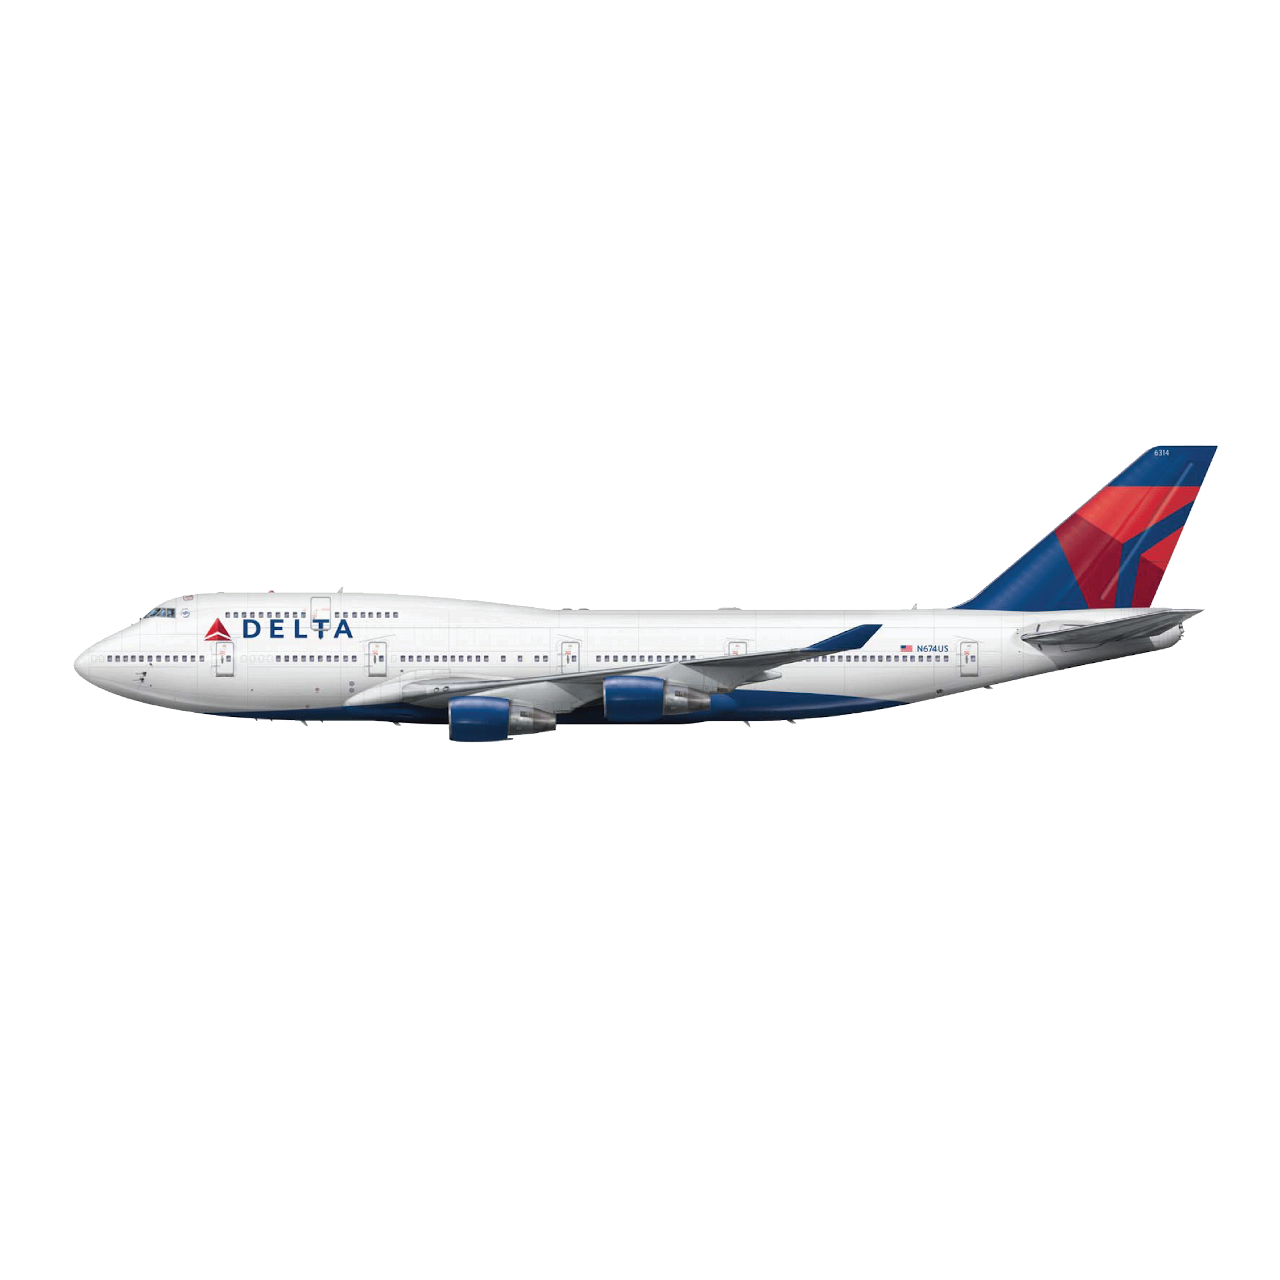 A Delta Air Lines branded Boeing 747-400 airplane